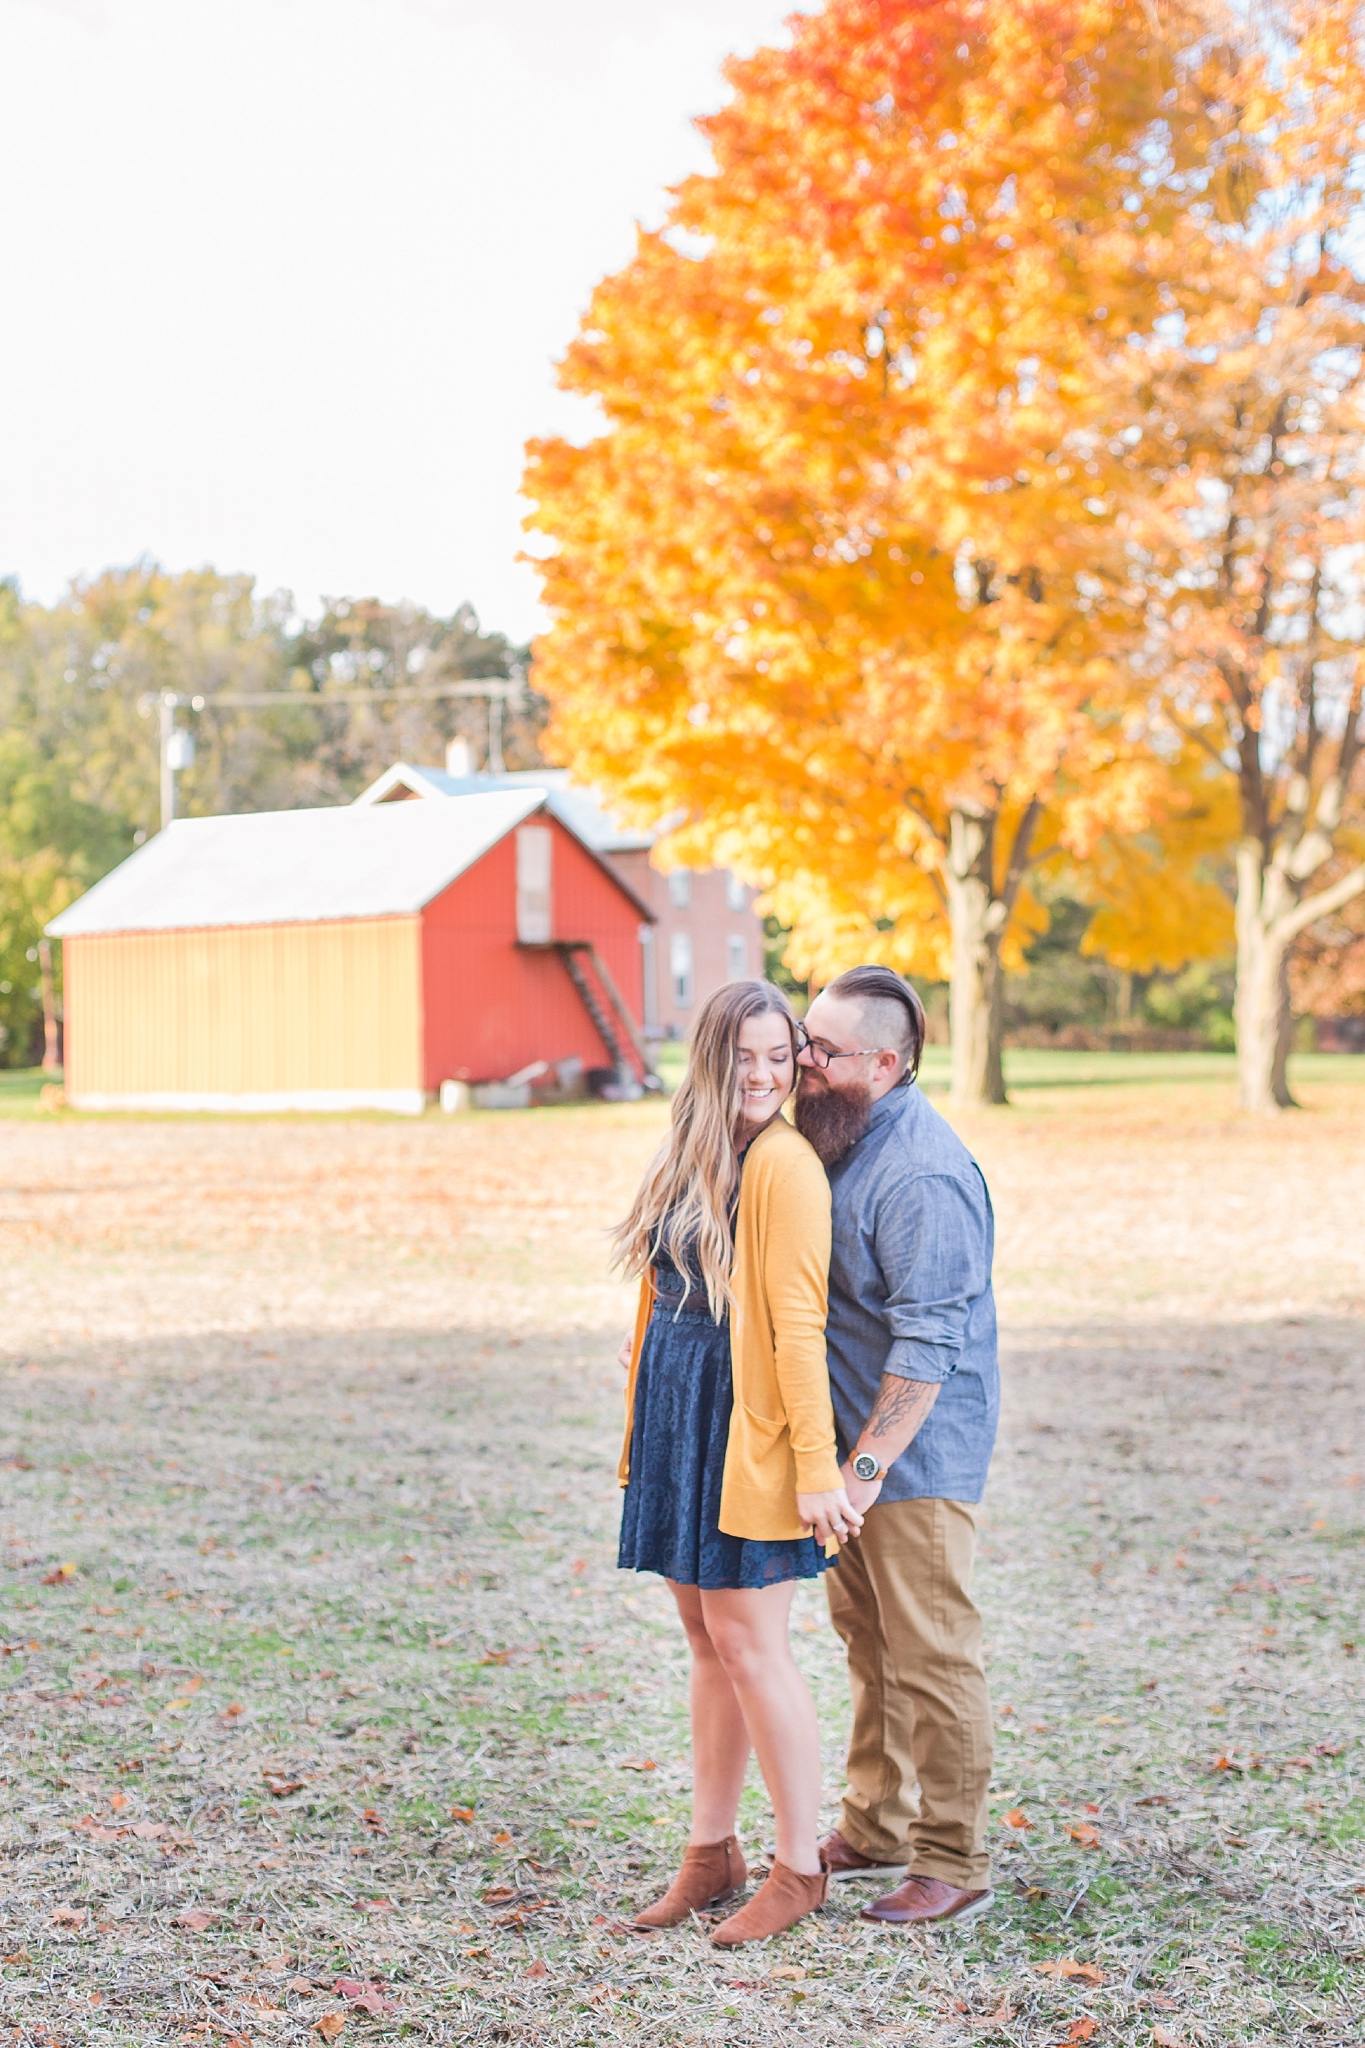 cozy-fall-engagement-photos-at-an-old-family-farm-in-monroe-michigan-by-courtney-carolyn-photography_0010.jpg